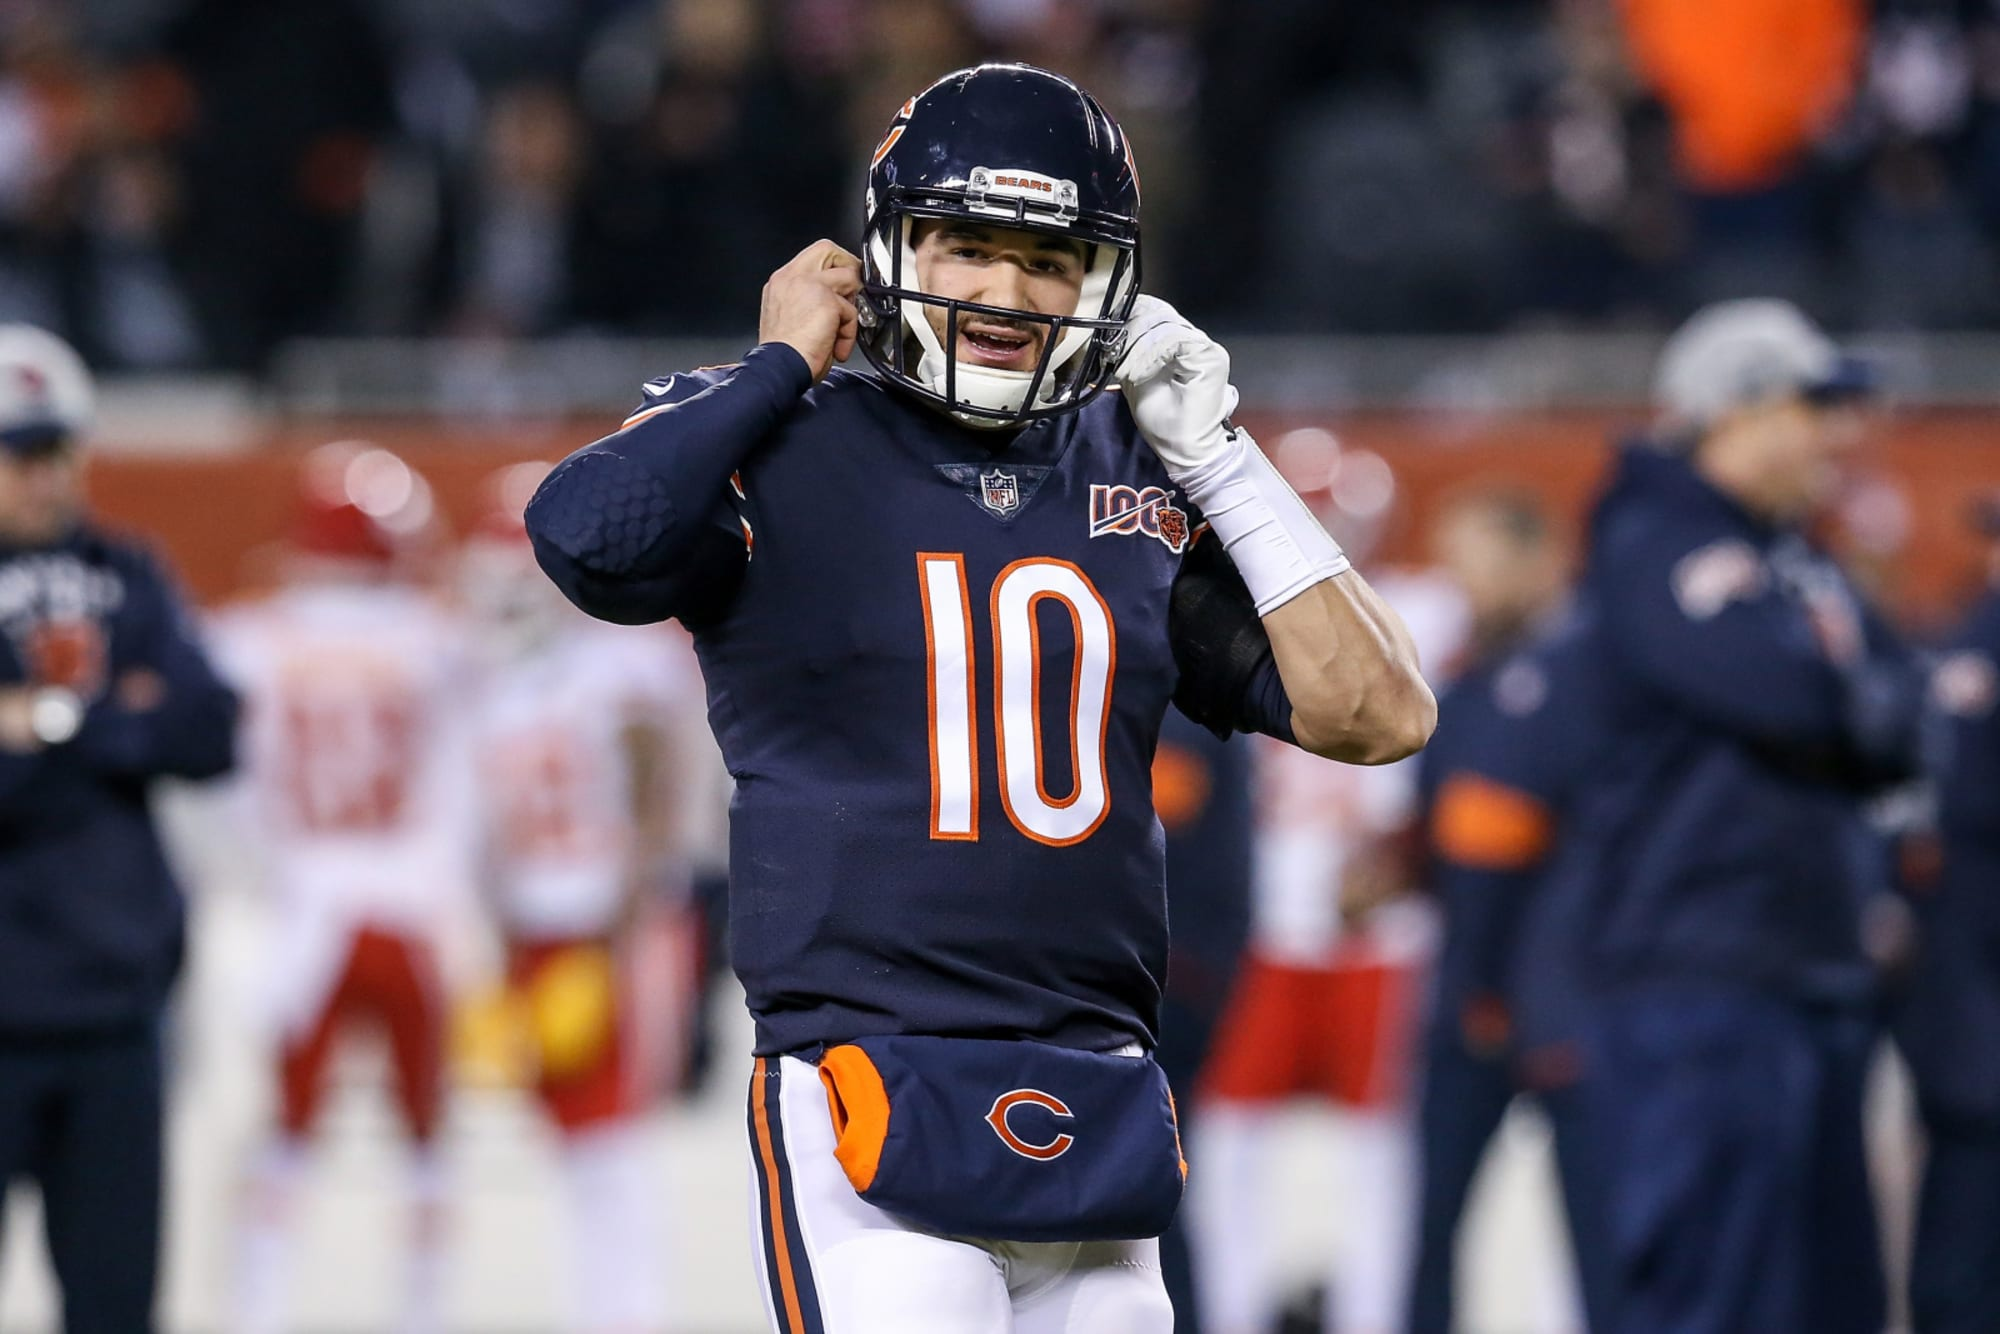 Chicago Bears: Ryan Pace should not have a say on QB decision